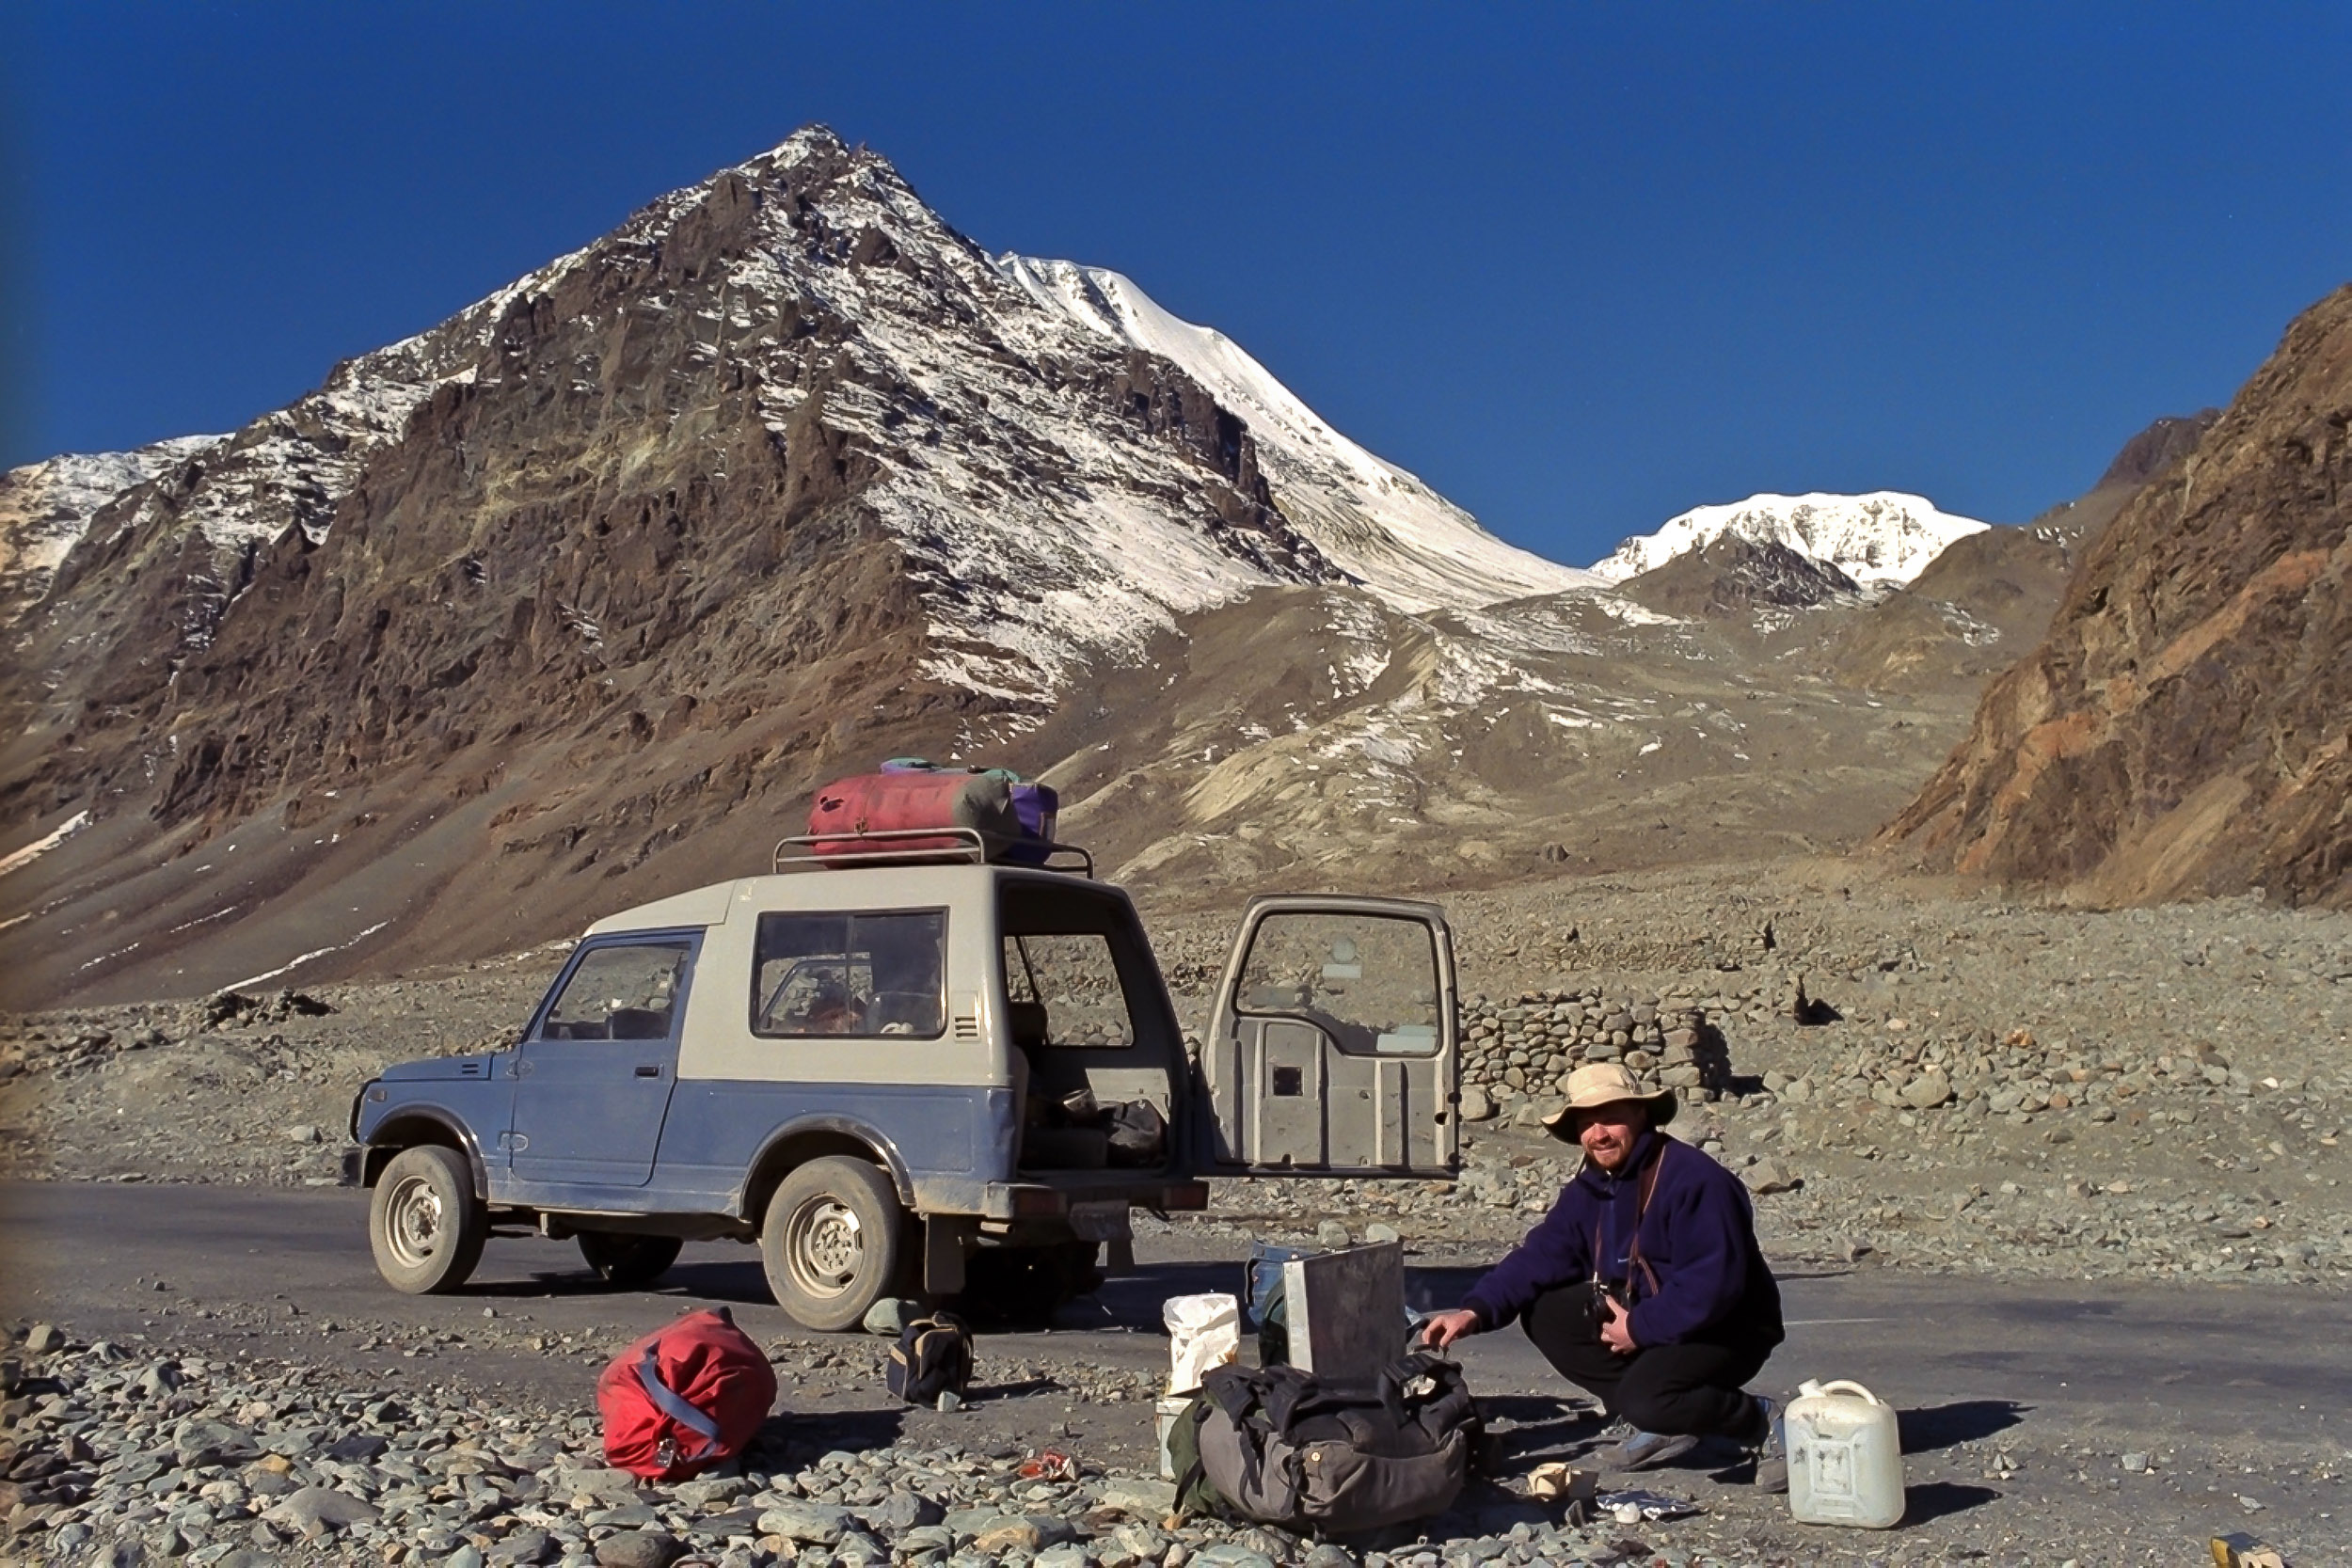 Glenn Guy   , the    Travel Photography Guru   , unpacking the jeep prior to another auto repair on the road to    Pangong Tso, Ladakh, India    back in the    early 90's   .